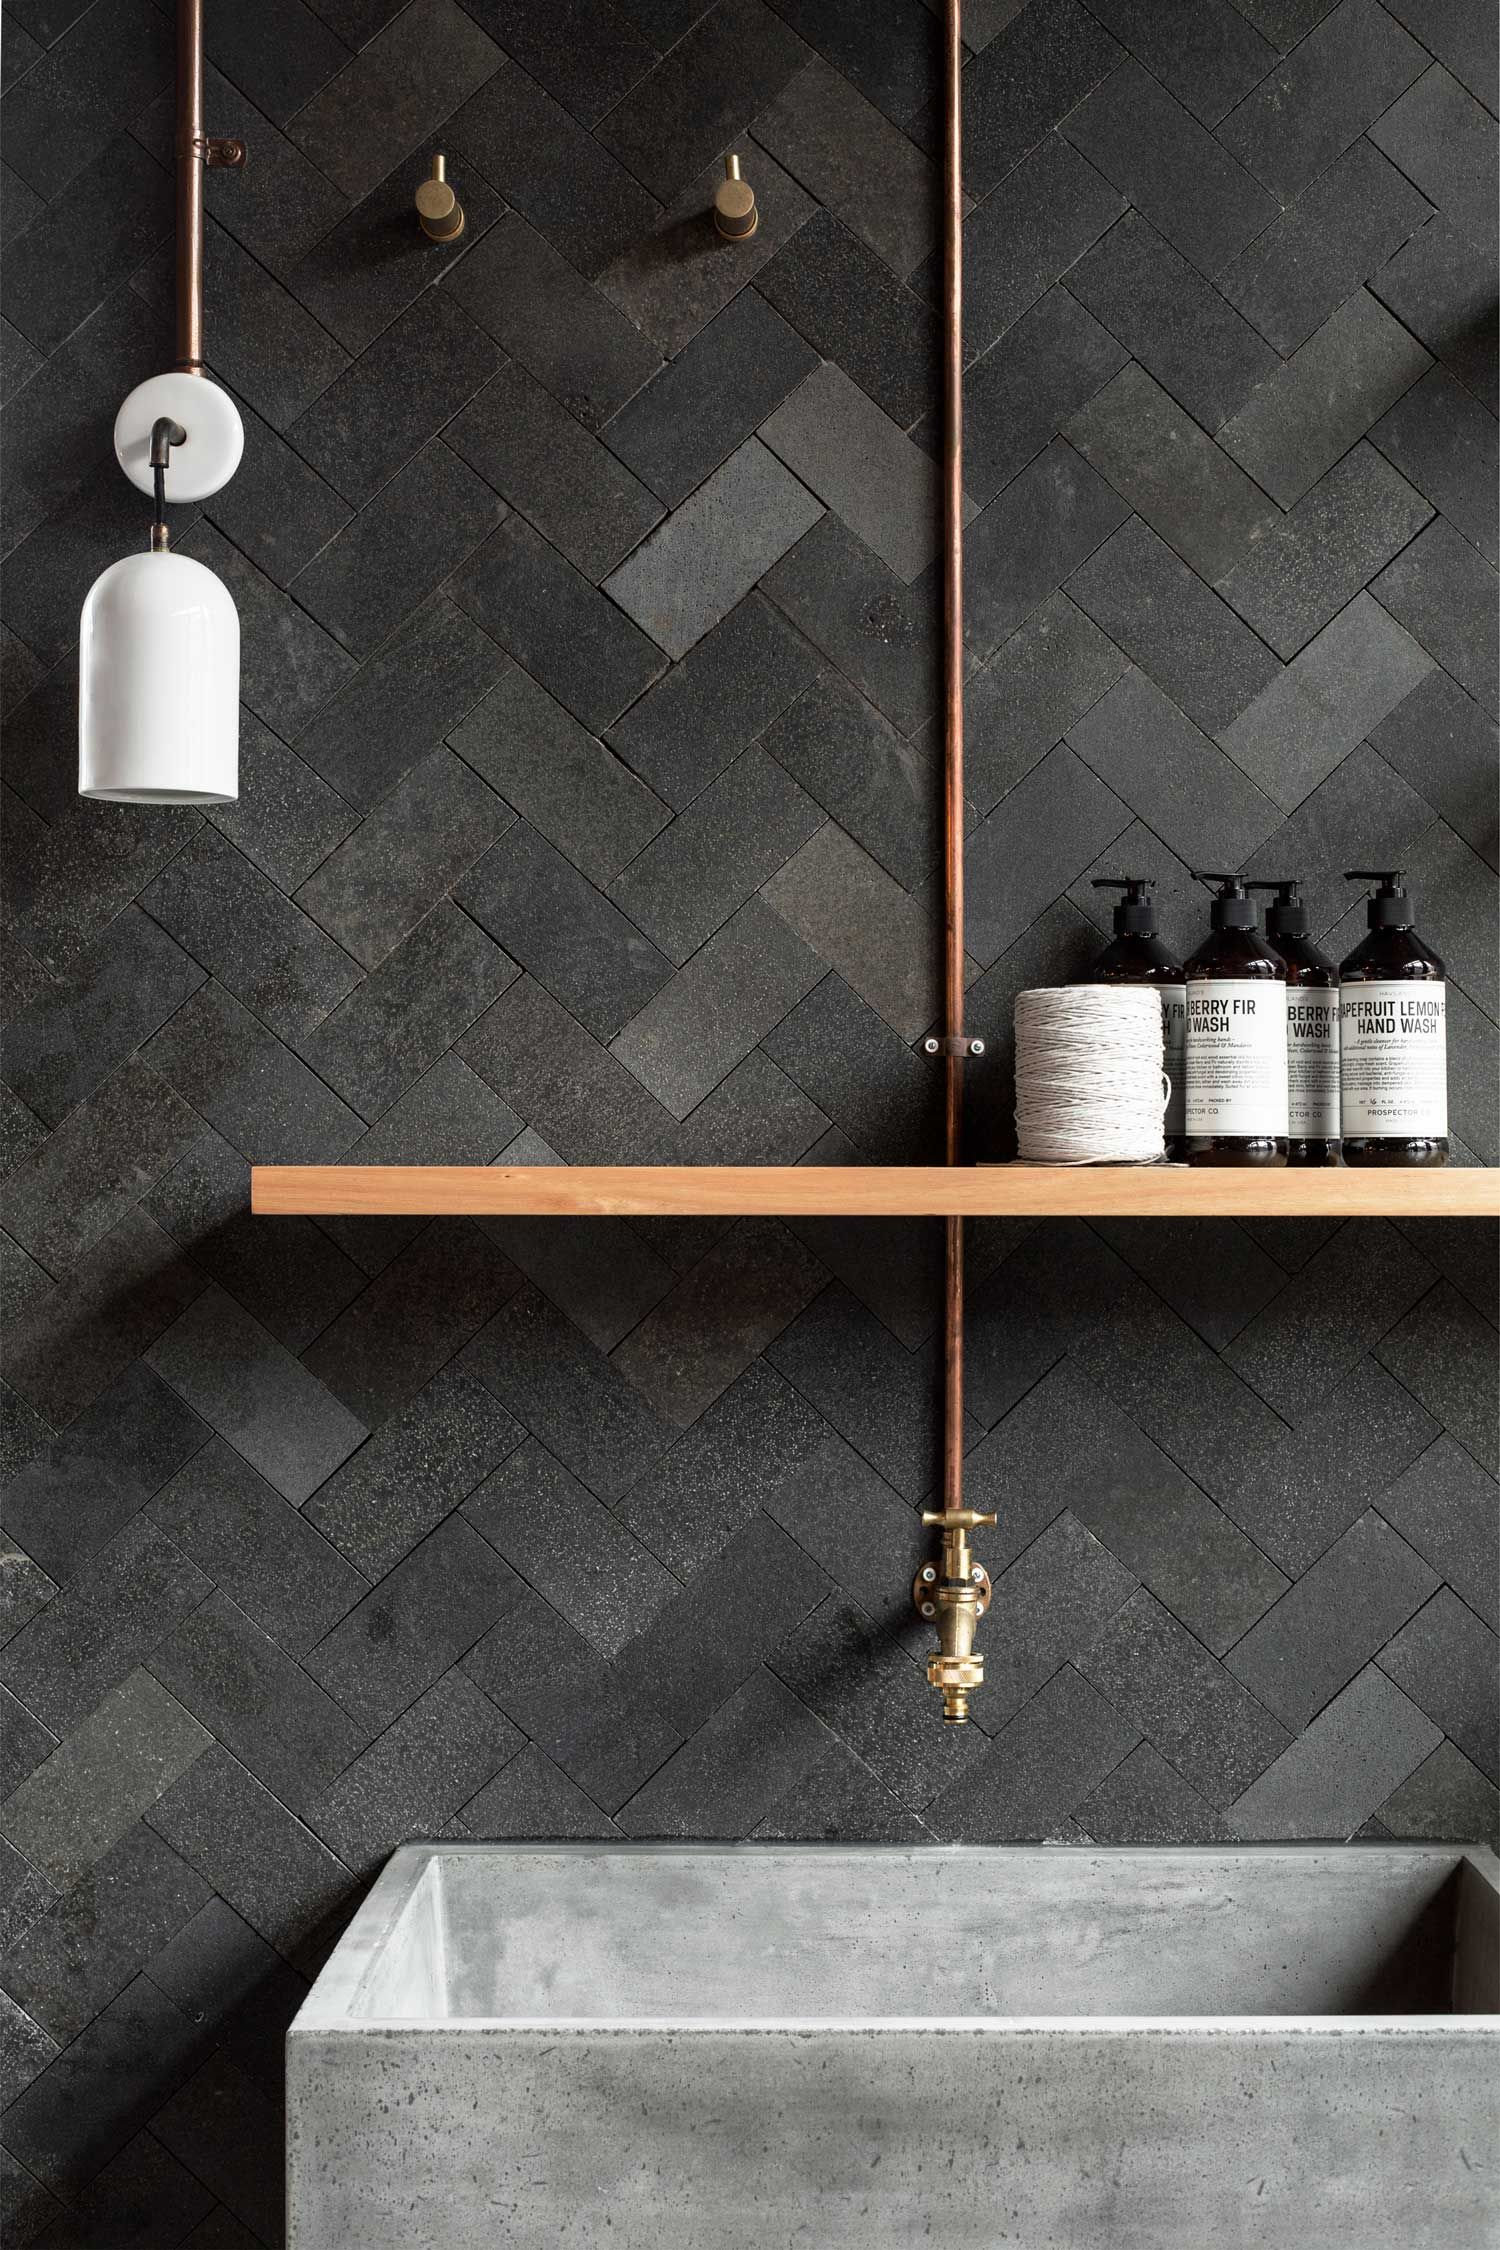 Decorative Wall Tiles Bathroom Interview Studio Pipkorn & Kilpatrick Oxfords Dark Bathrooms